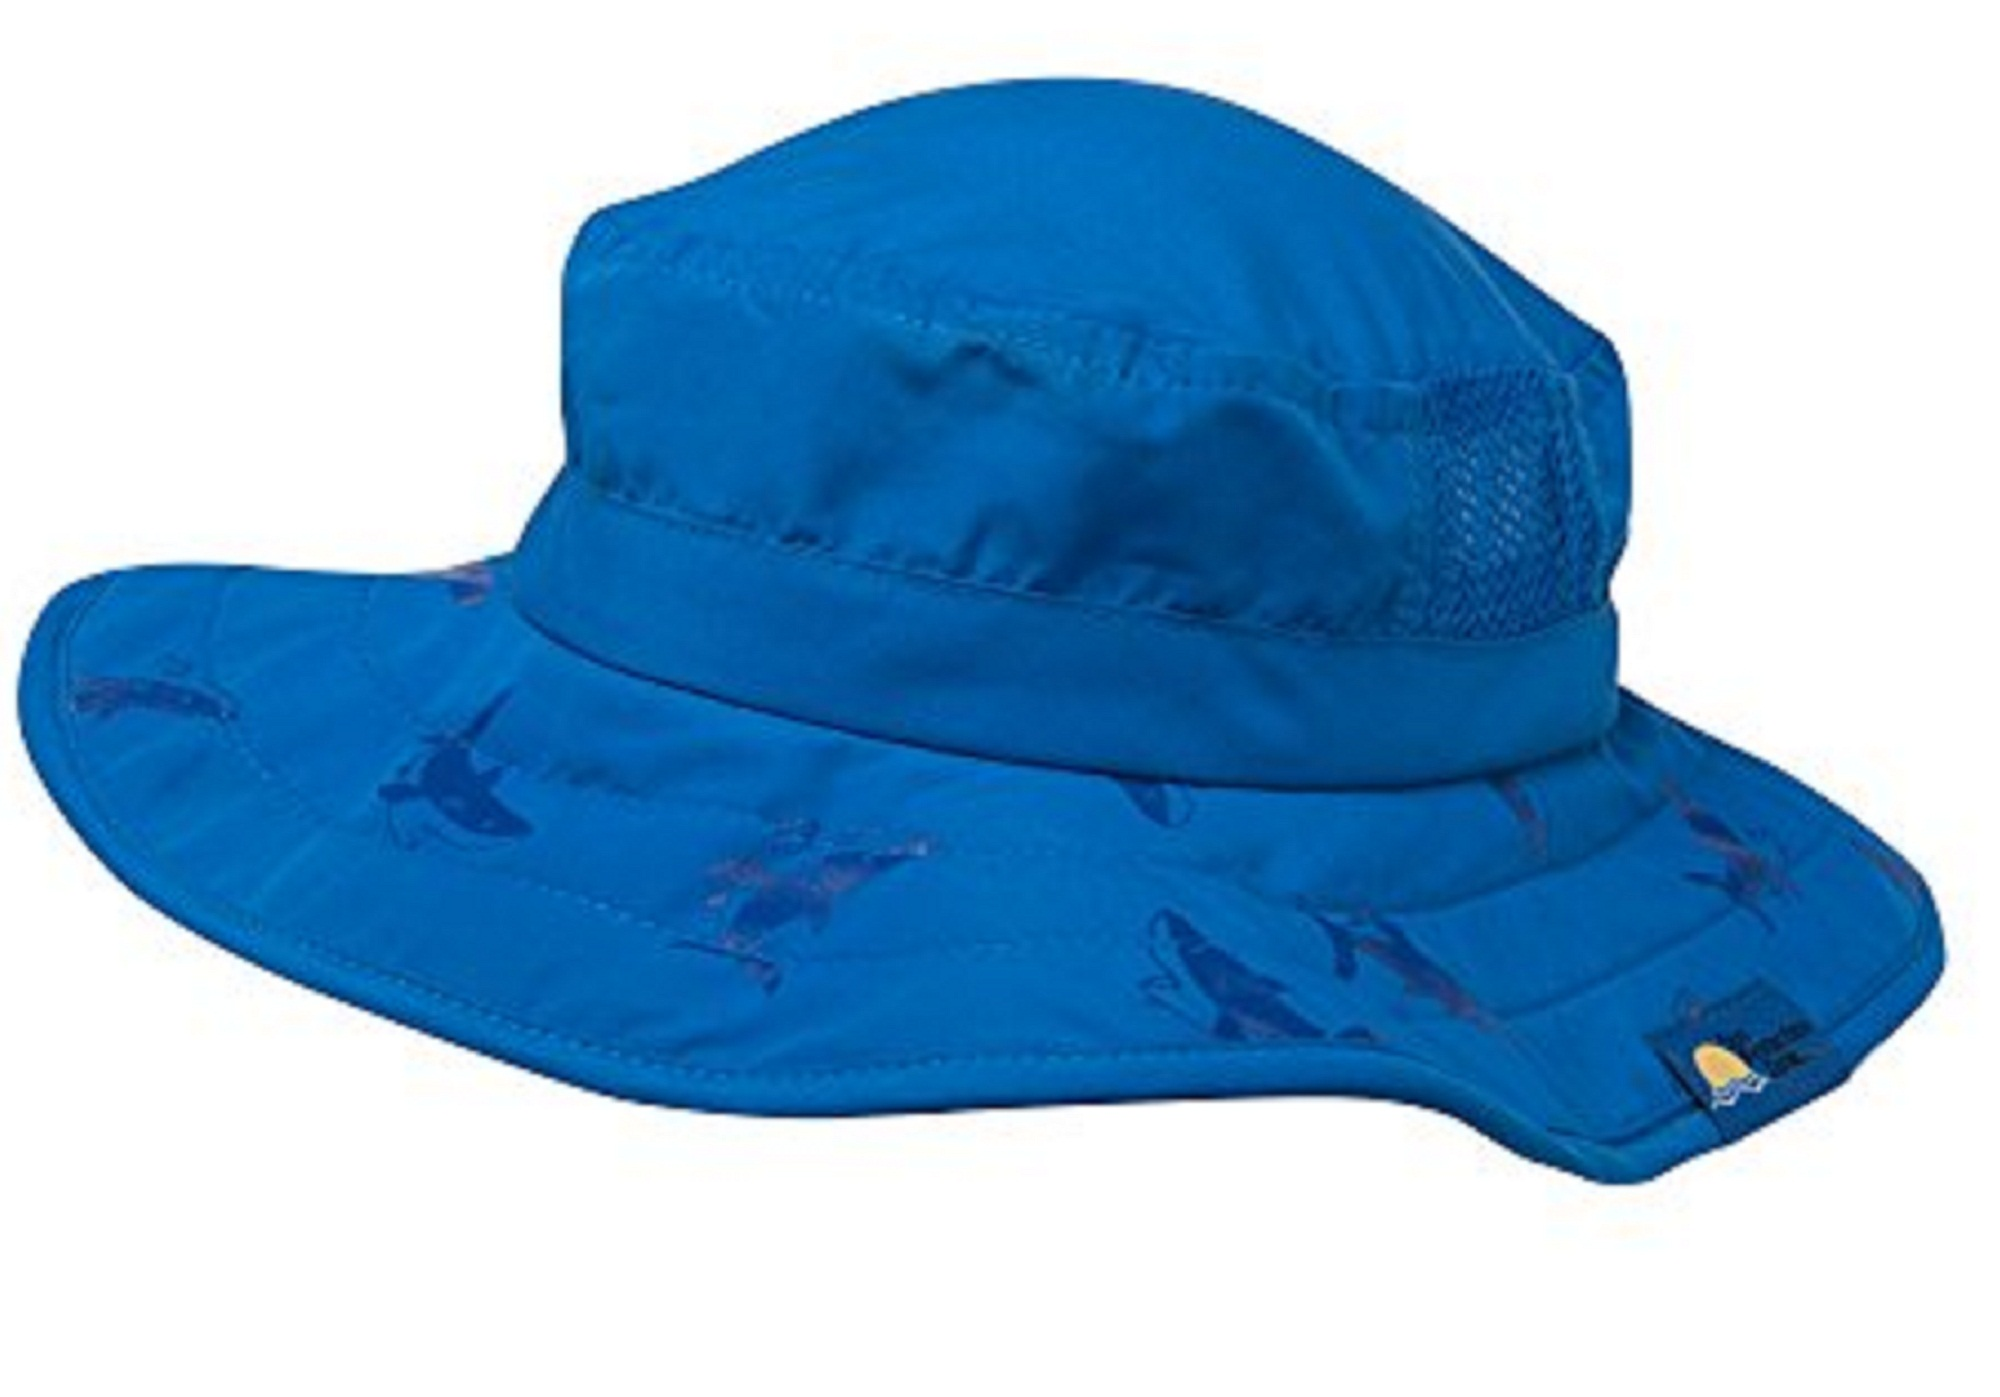 ebb31590145 Sun Protection Zone - Kids UPF 50+ Safari Sun Hat - Blue Shark - Walmart.com